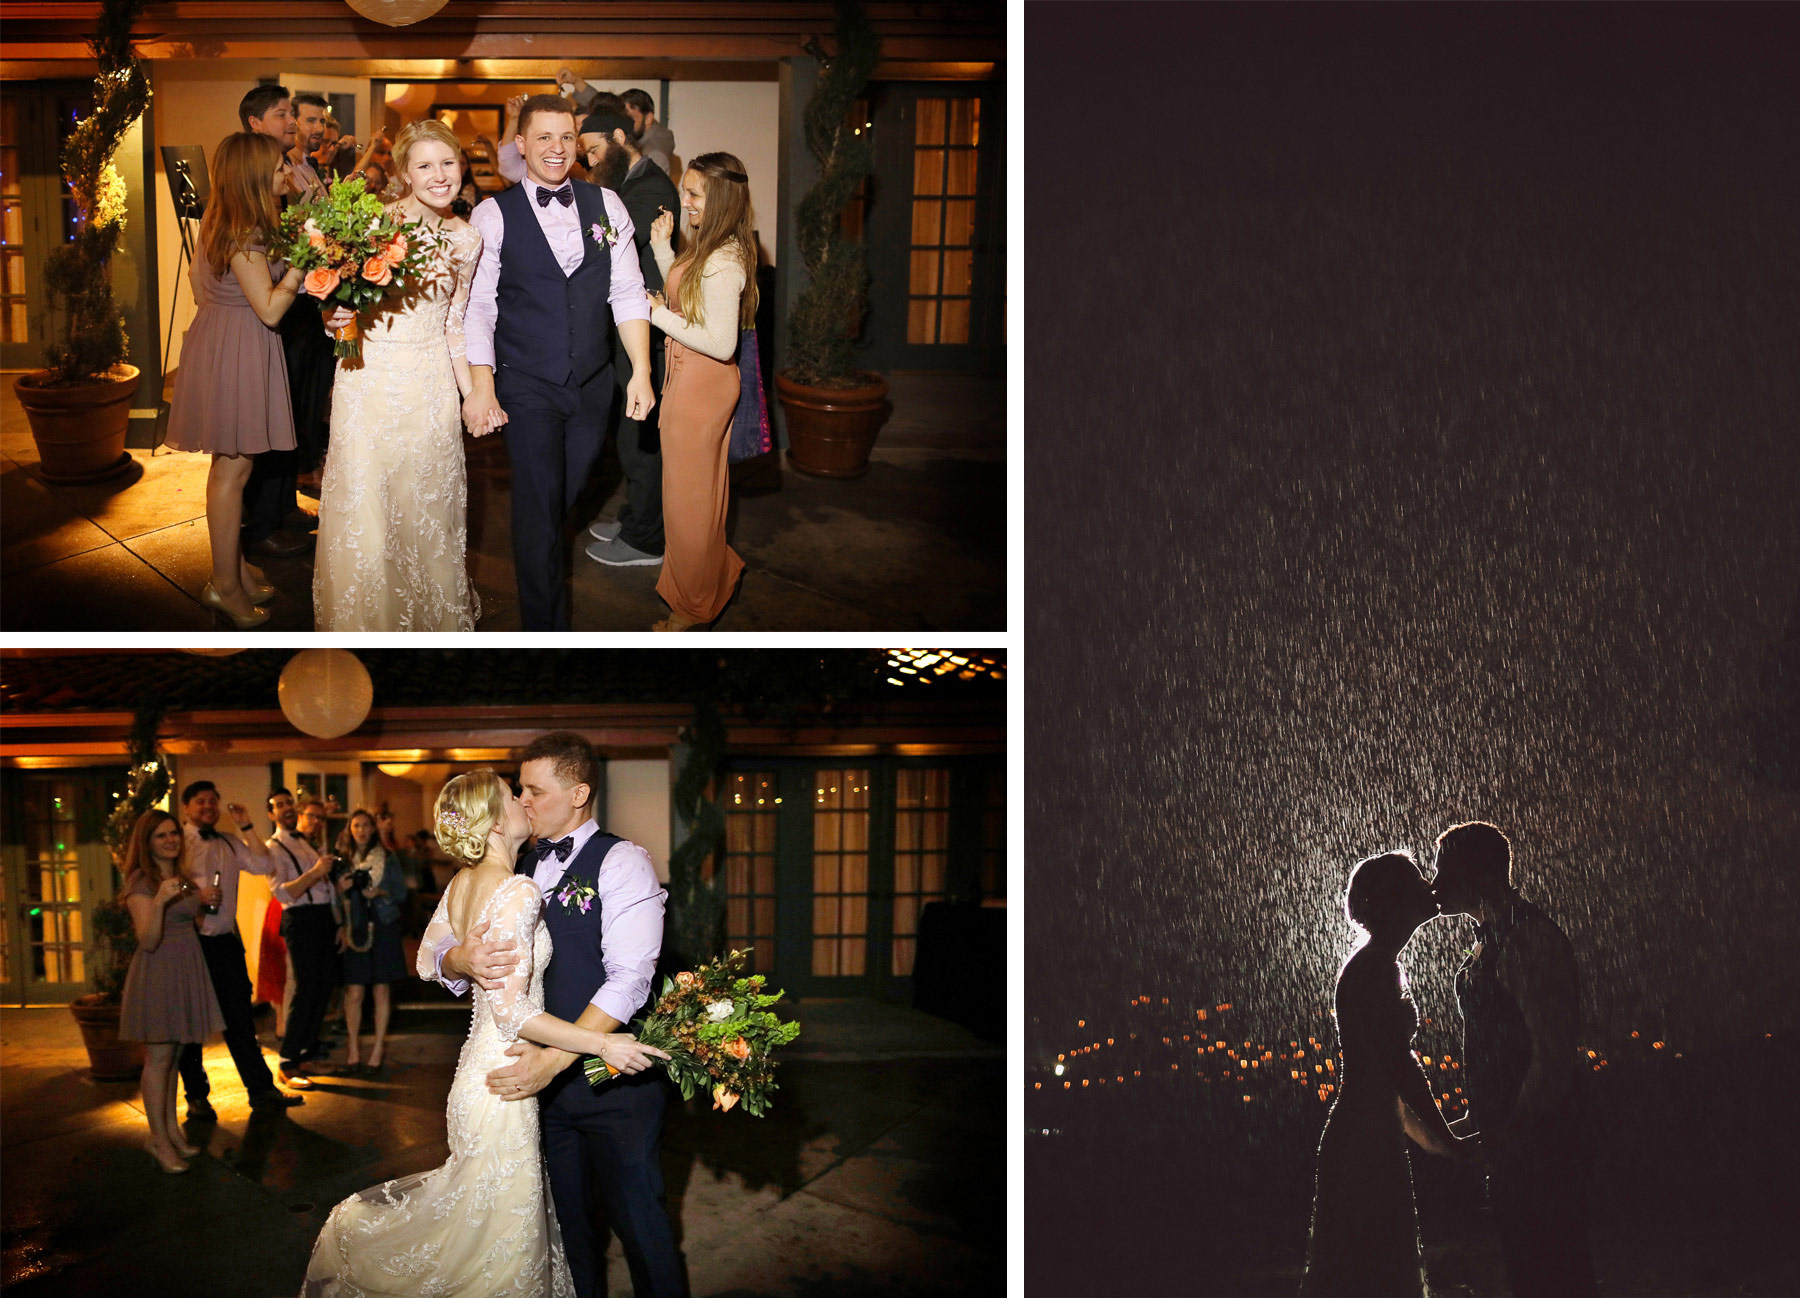 18-La-Canada-Flintridge-California-Wedding-Photographer-by-Andrew-Vick-Photography-Fall-Autumn-Destination-Reception-Bride-Groom-Night-Kiss-Rain-Fawn-and-Jay.jpg